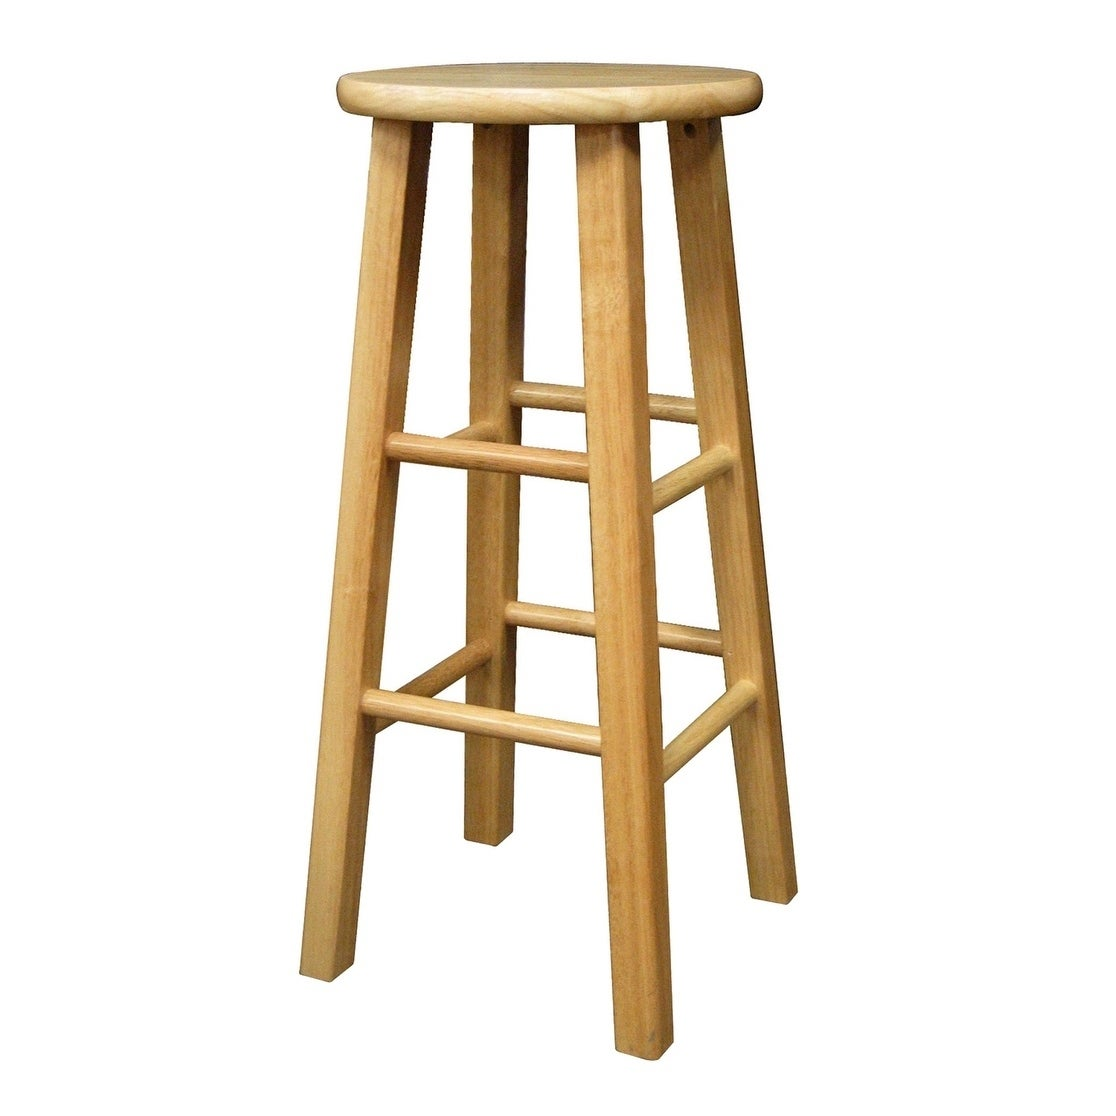 Tremendous Winsome Dakota 29 Solid Wood Bar Stool With Square Legs Natural Finish Pabps2019 Chair Design Images Pabps2019Com